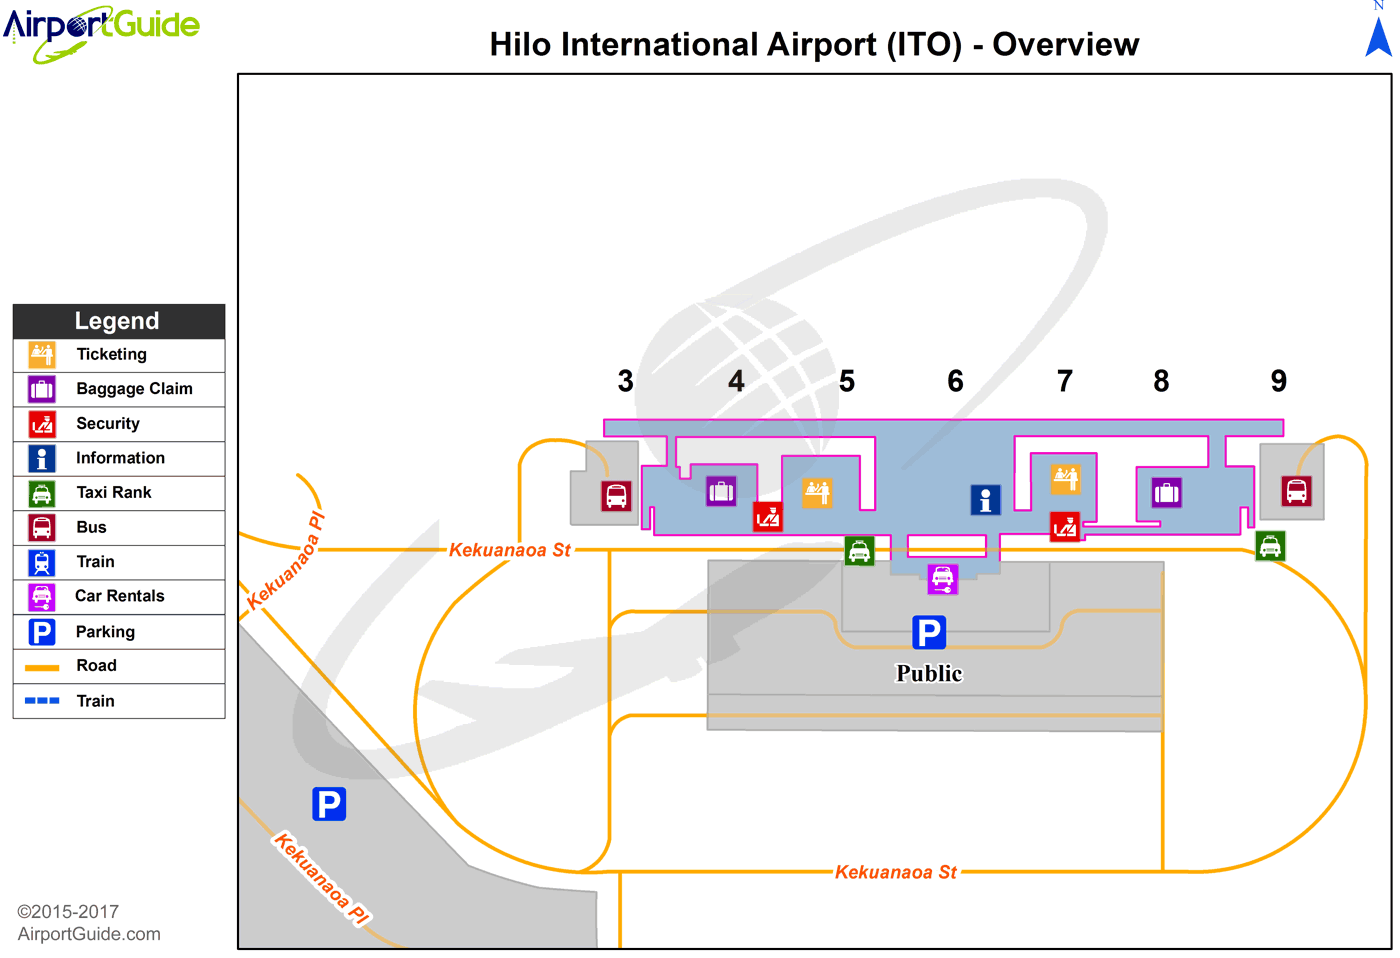 Hilo - Hilo International (ITO) Airport Terminal Map - Overview